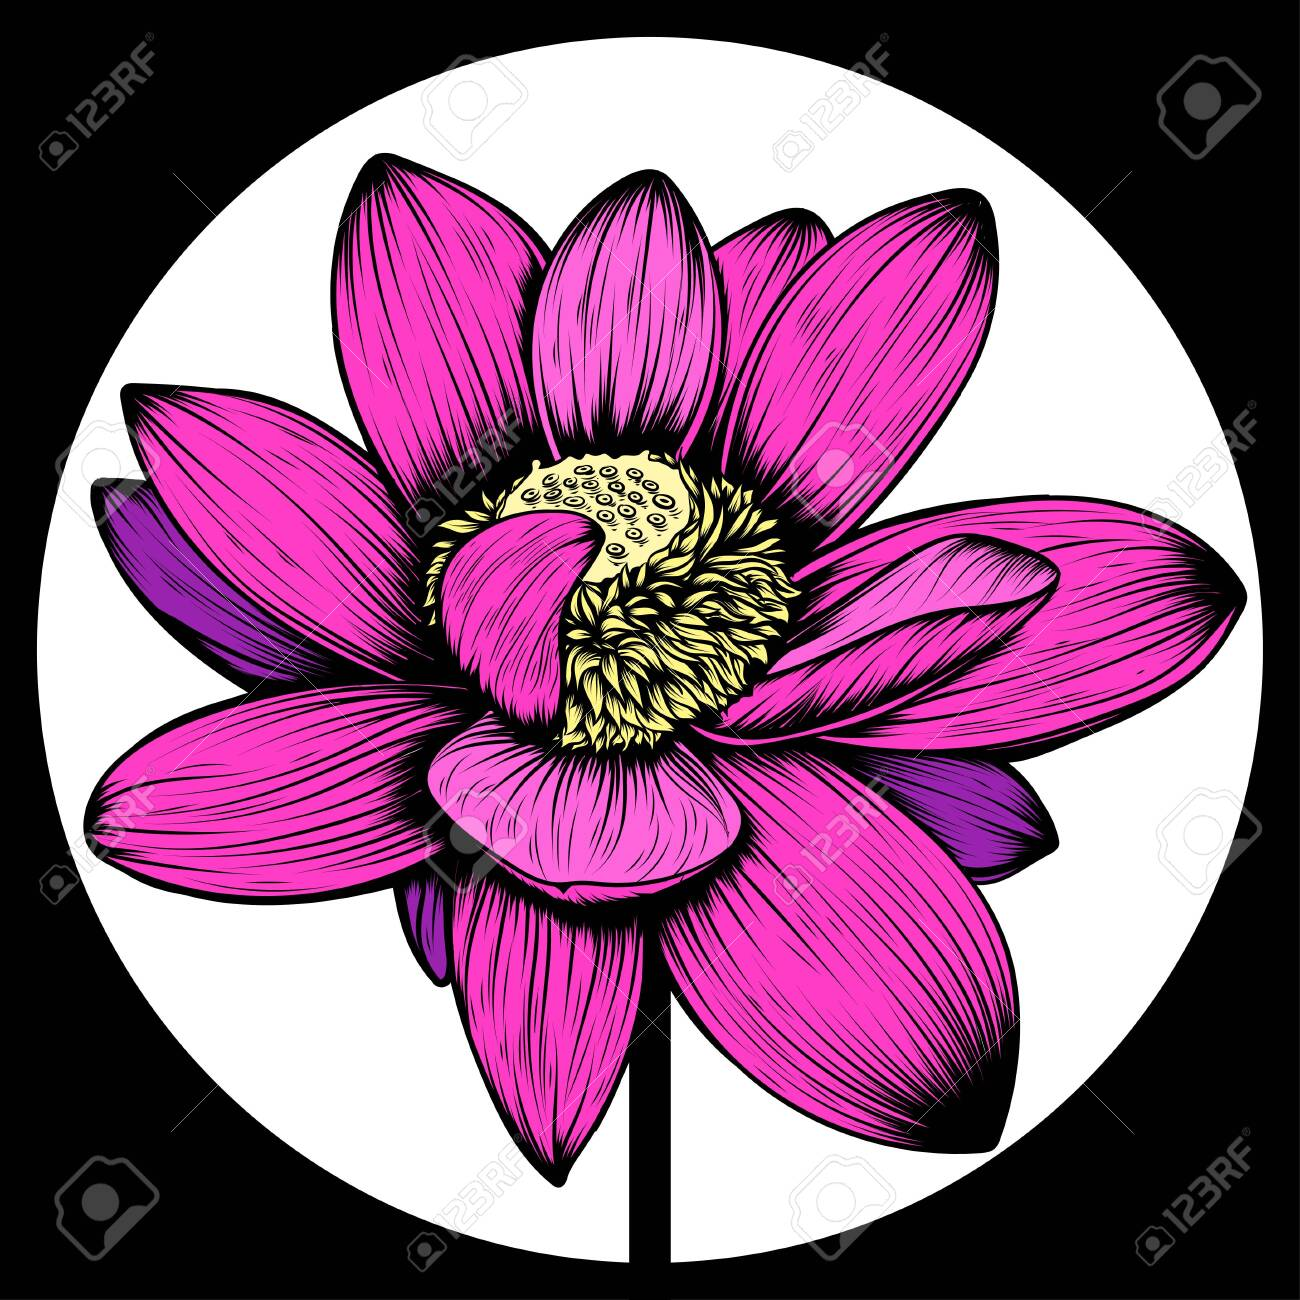 Hand Drawn Lotus Flower T Shirt Tattoo Design Element Bouquet Royalty Free Cliparts Vectors And Stock Illustration Image 137329188